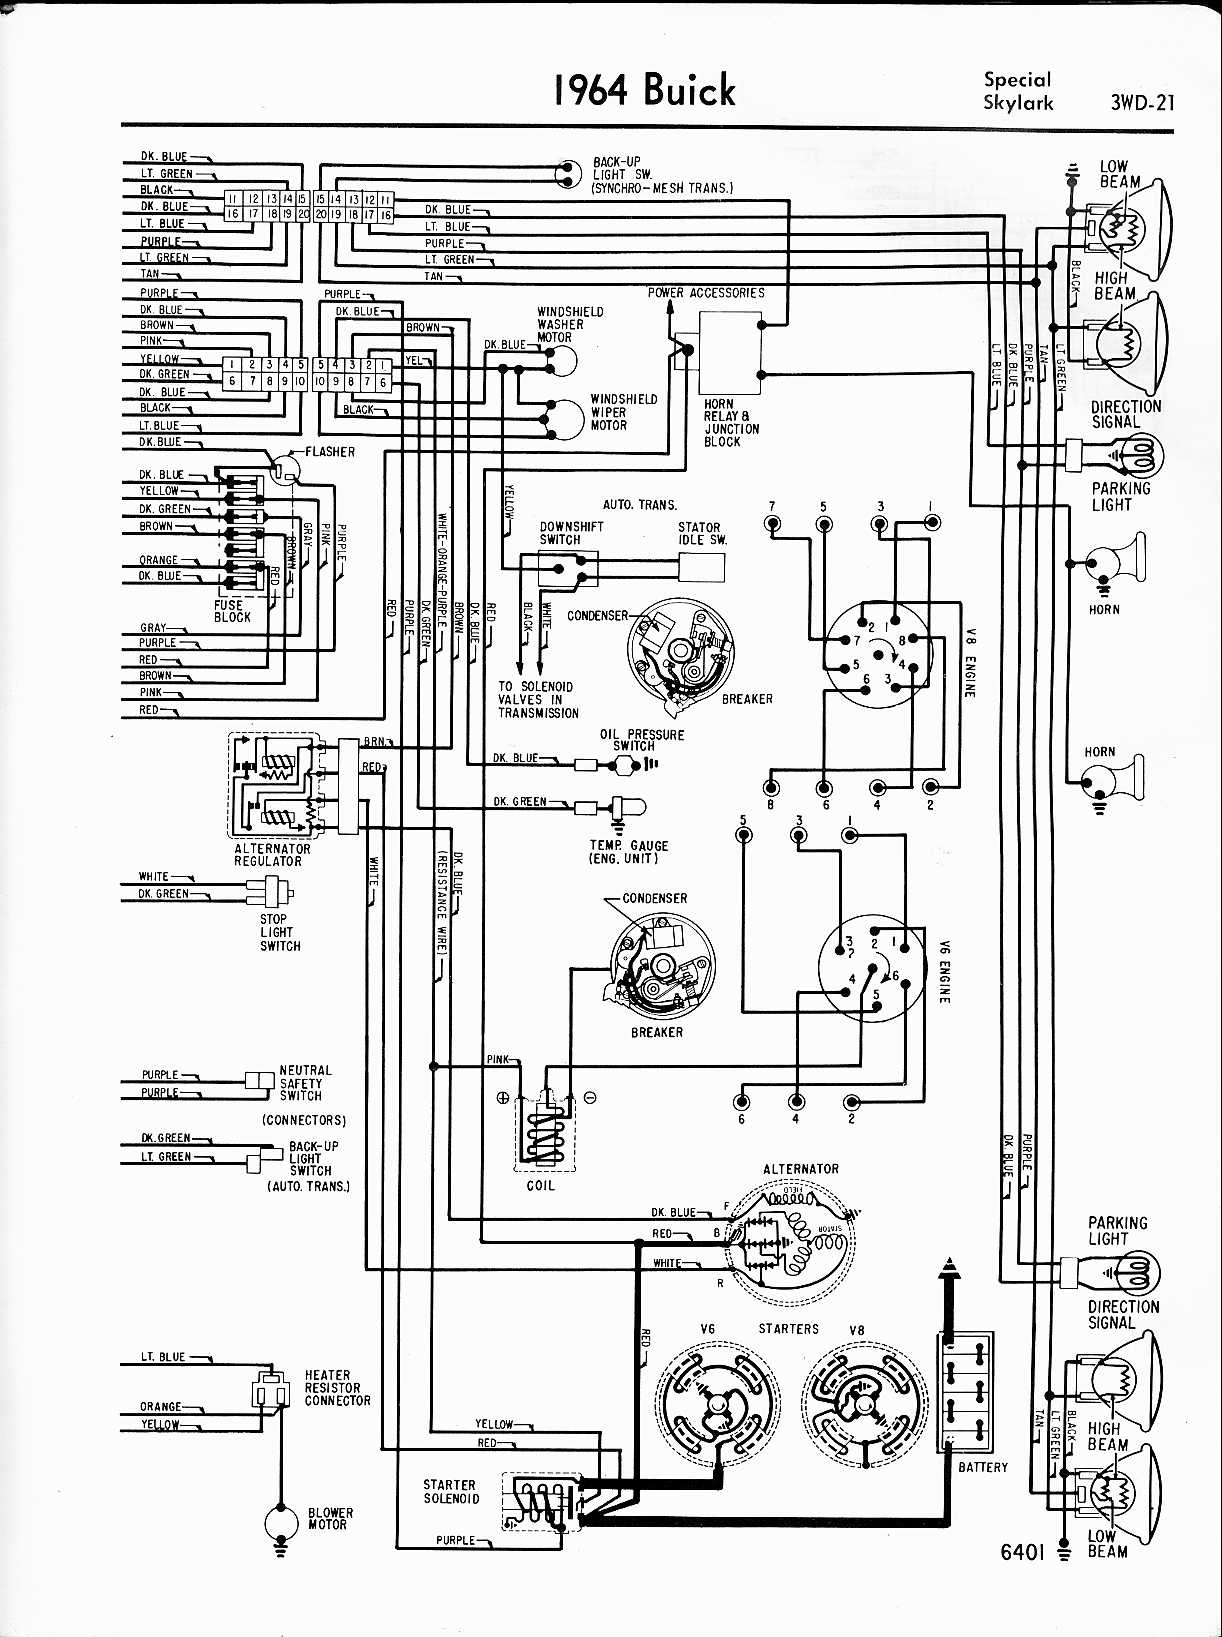 67 Buick Riviera Wiring Diagram Schematic Starting Know About 041 Stihl Chainsaw Engine 1966 Simple Rh David Huggett Co Uk